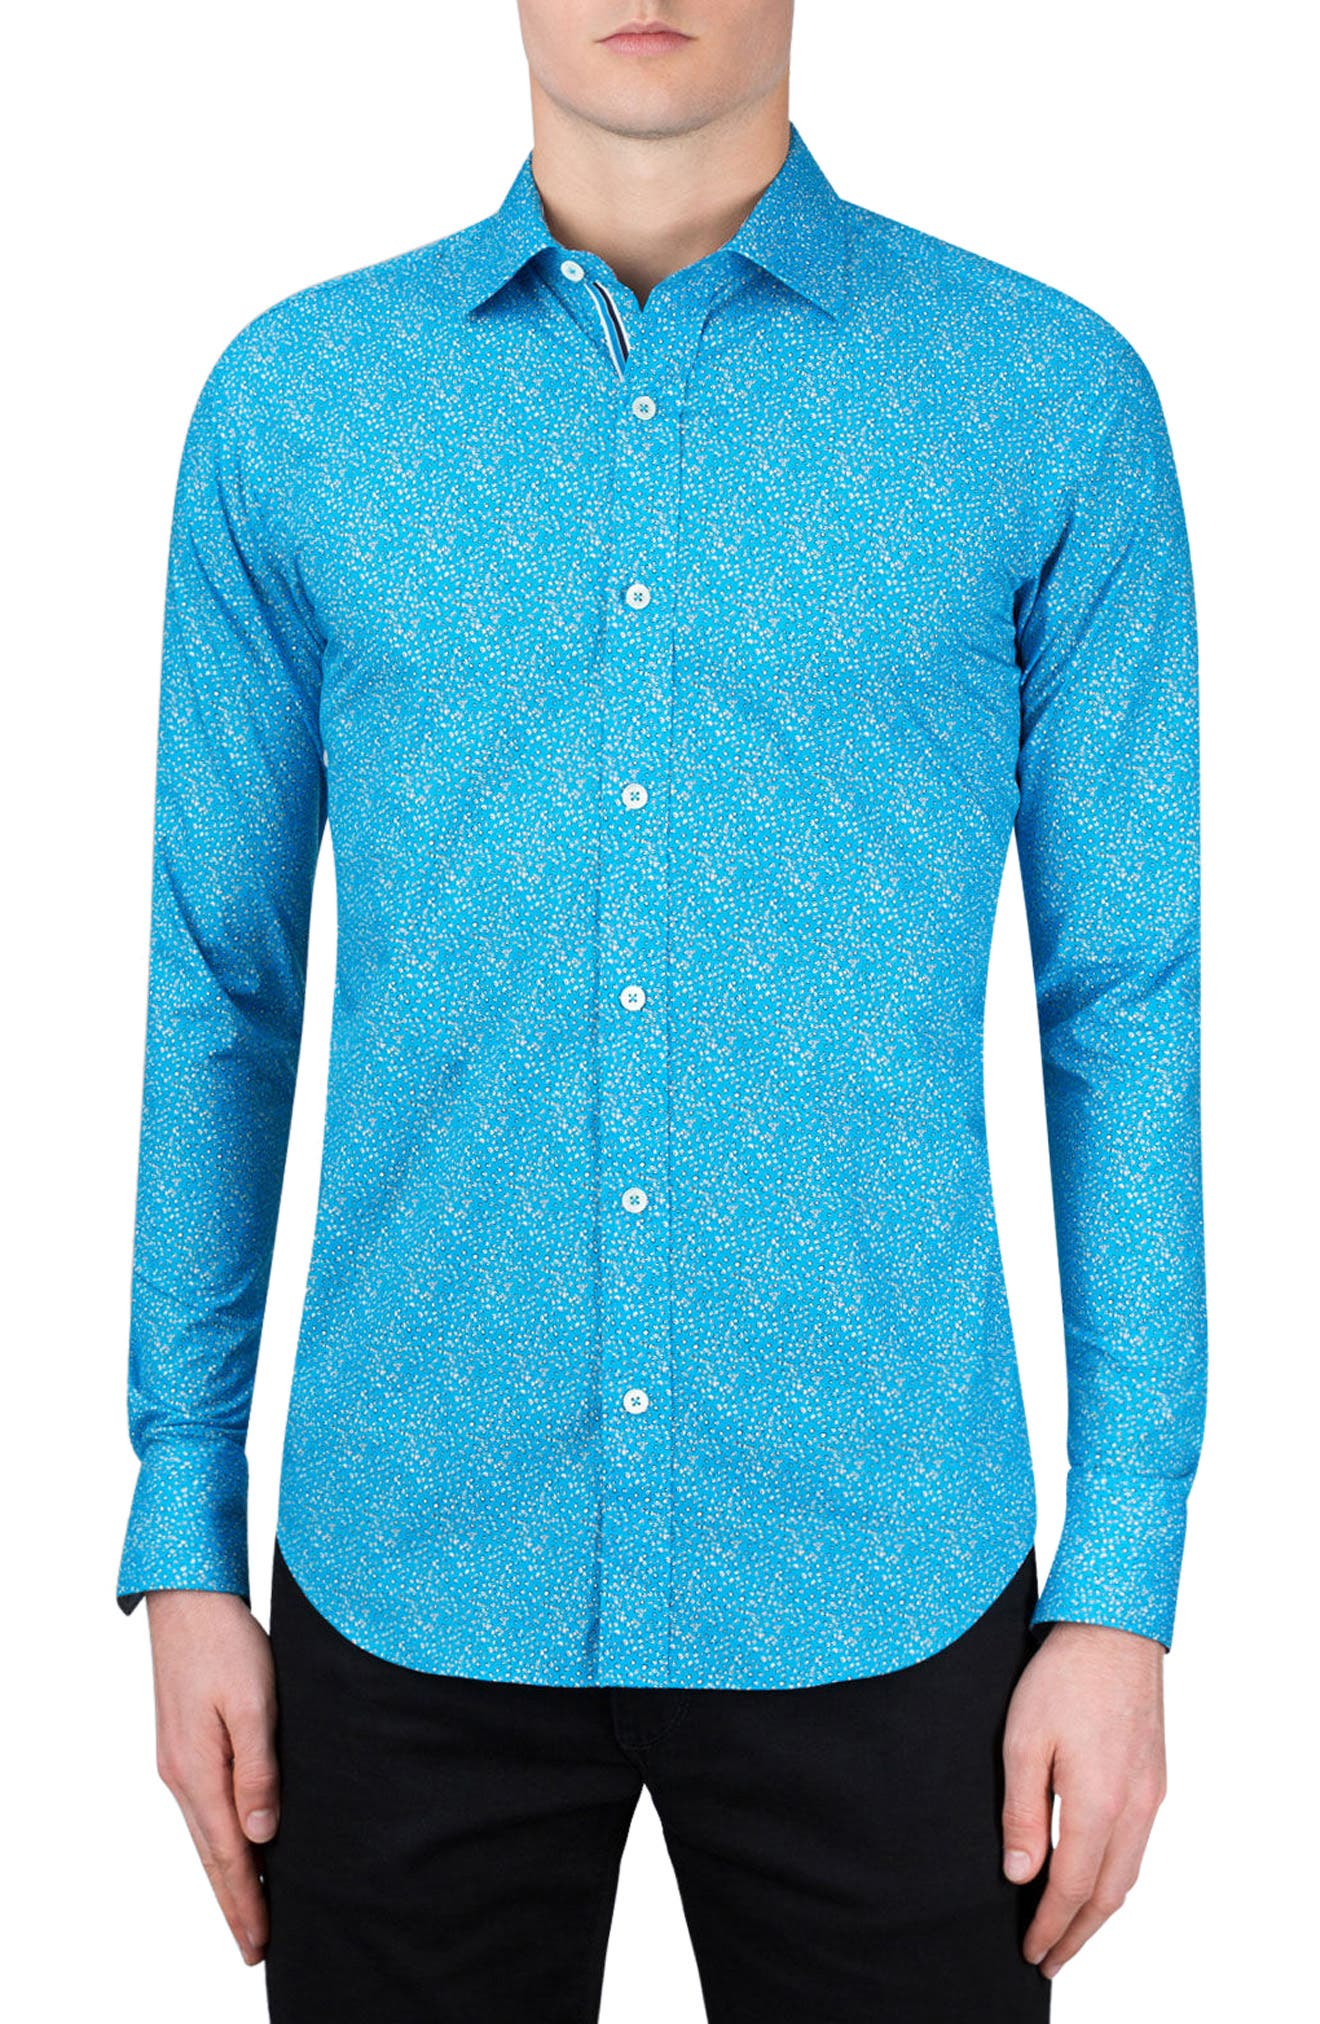 Alternate Image 1 Selected - Bugatchi Classic Fit Dot Print Sport Shirt